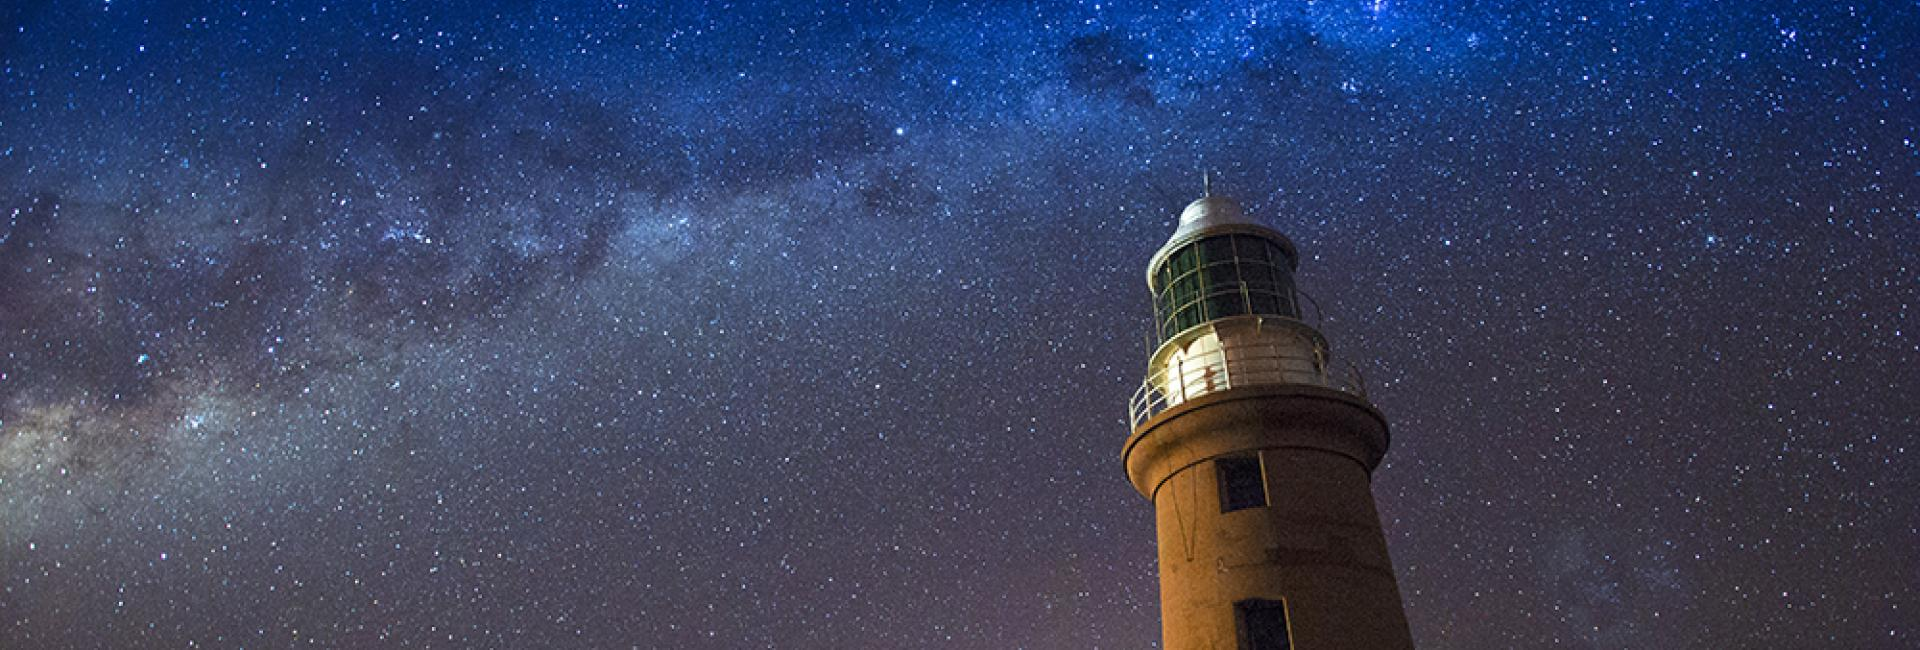 Starry night at Valmingh Head Lighthouse, Exmouth, Western Australia